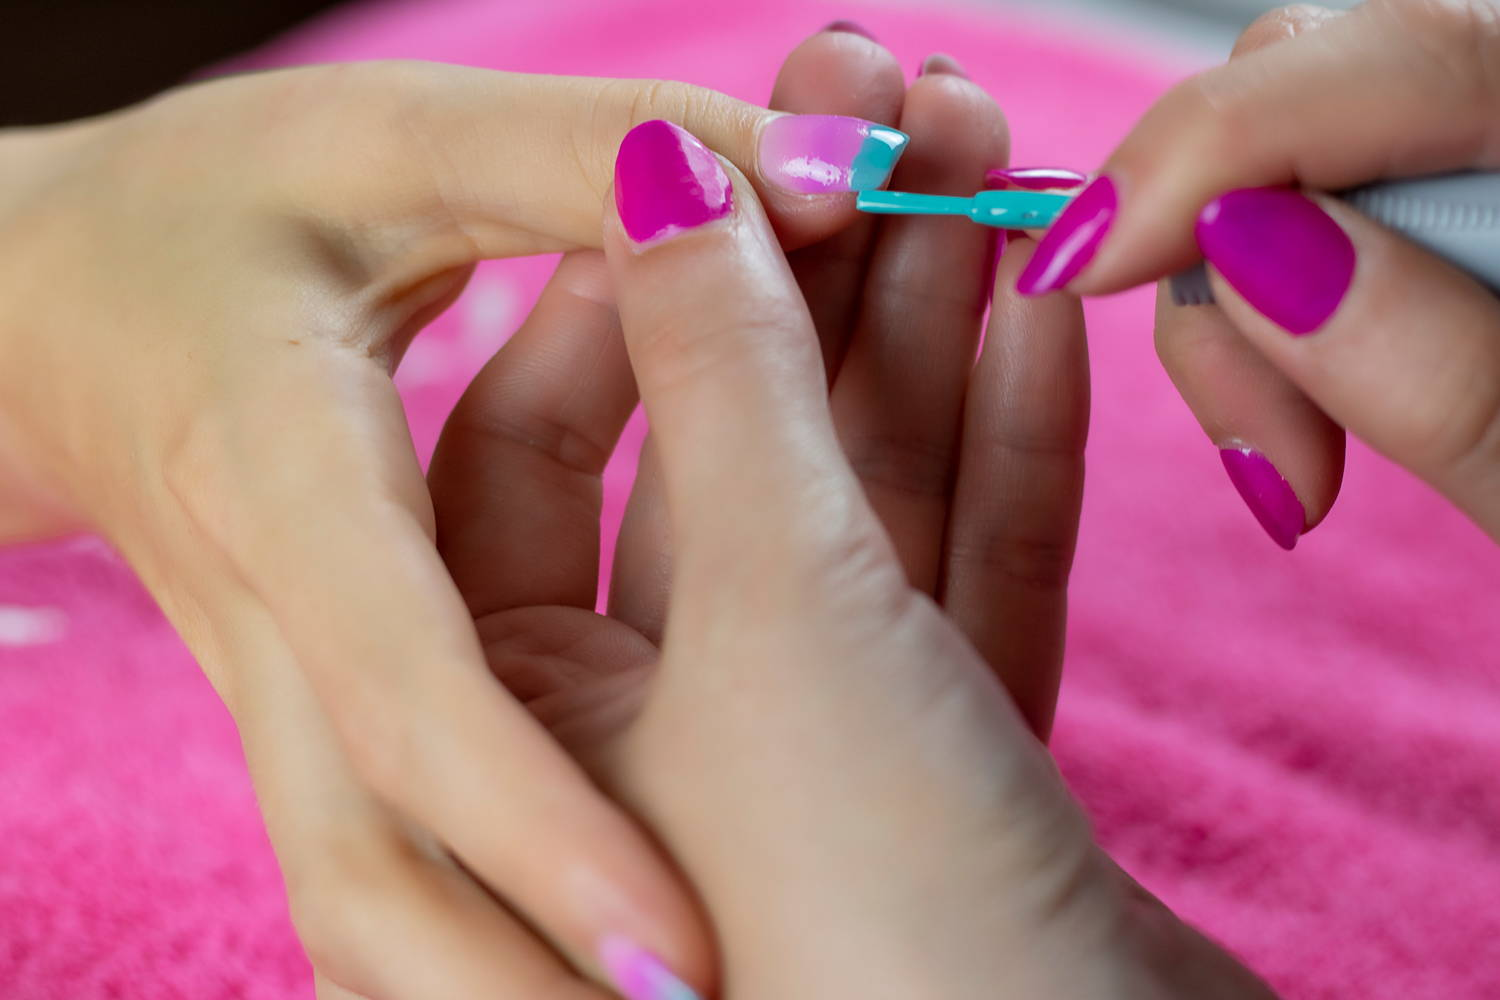 Nail art detail being painted using ORLY Gumdrop nail polish